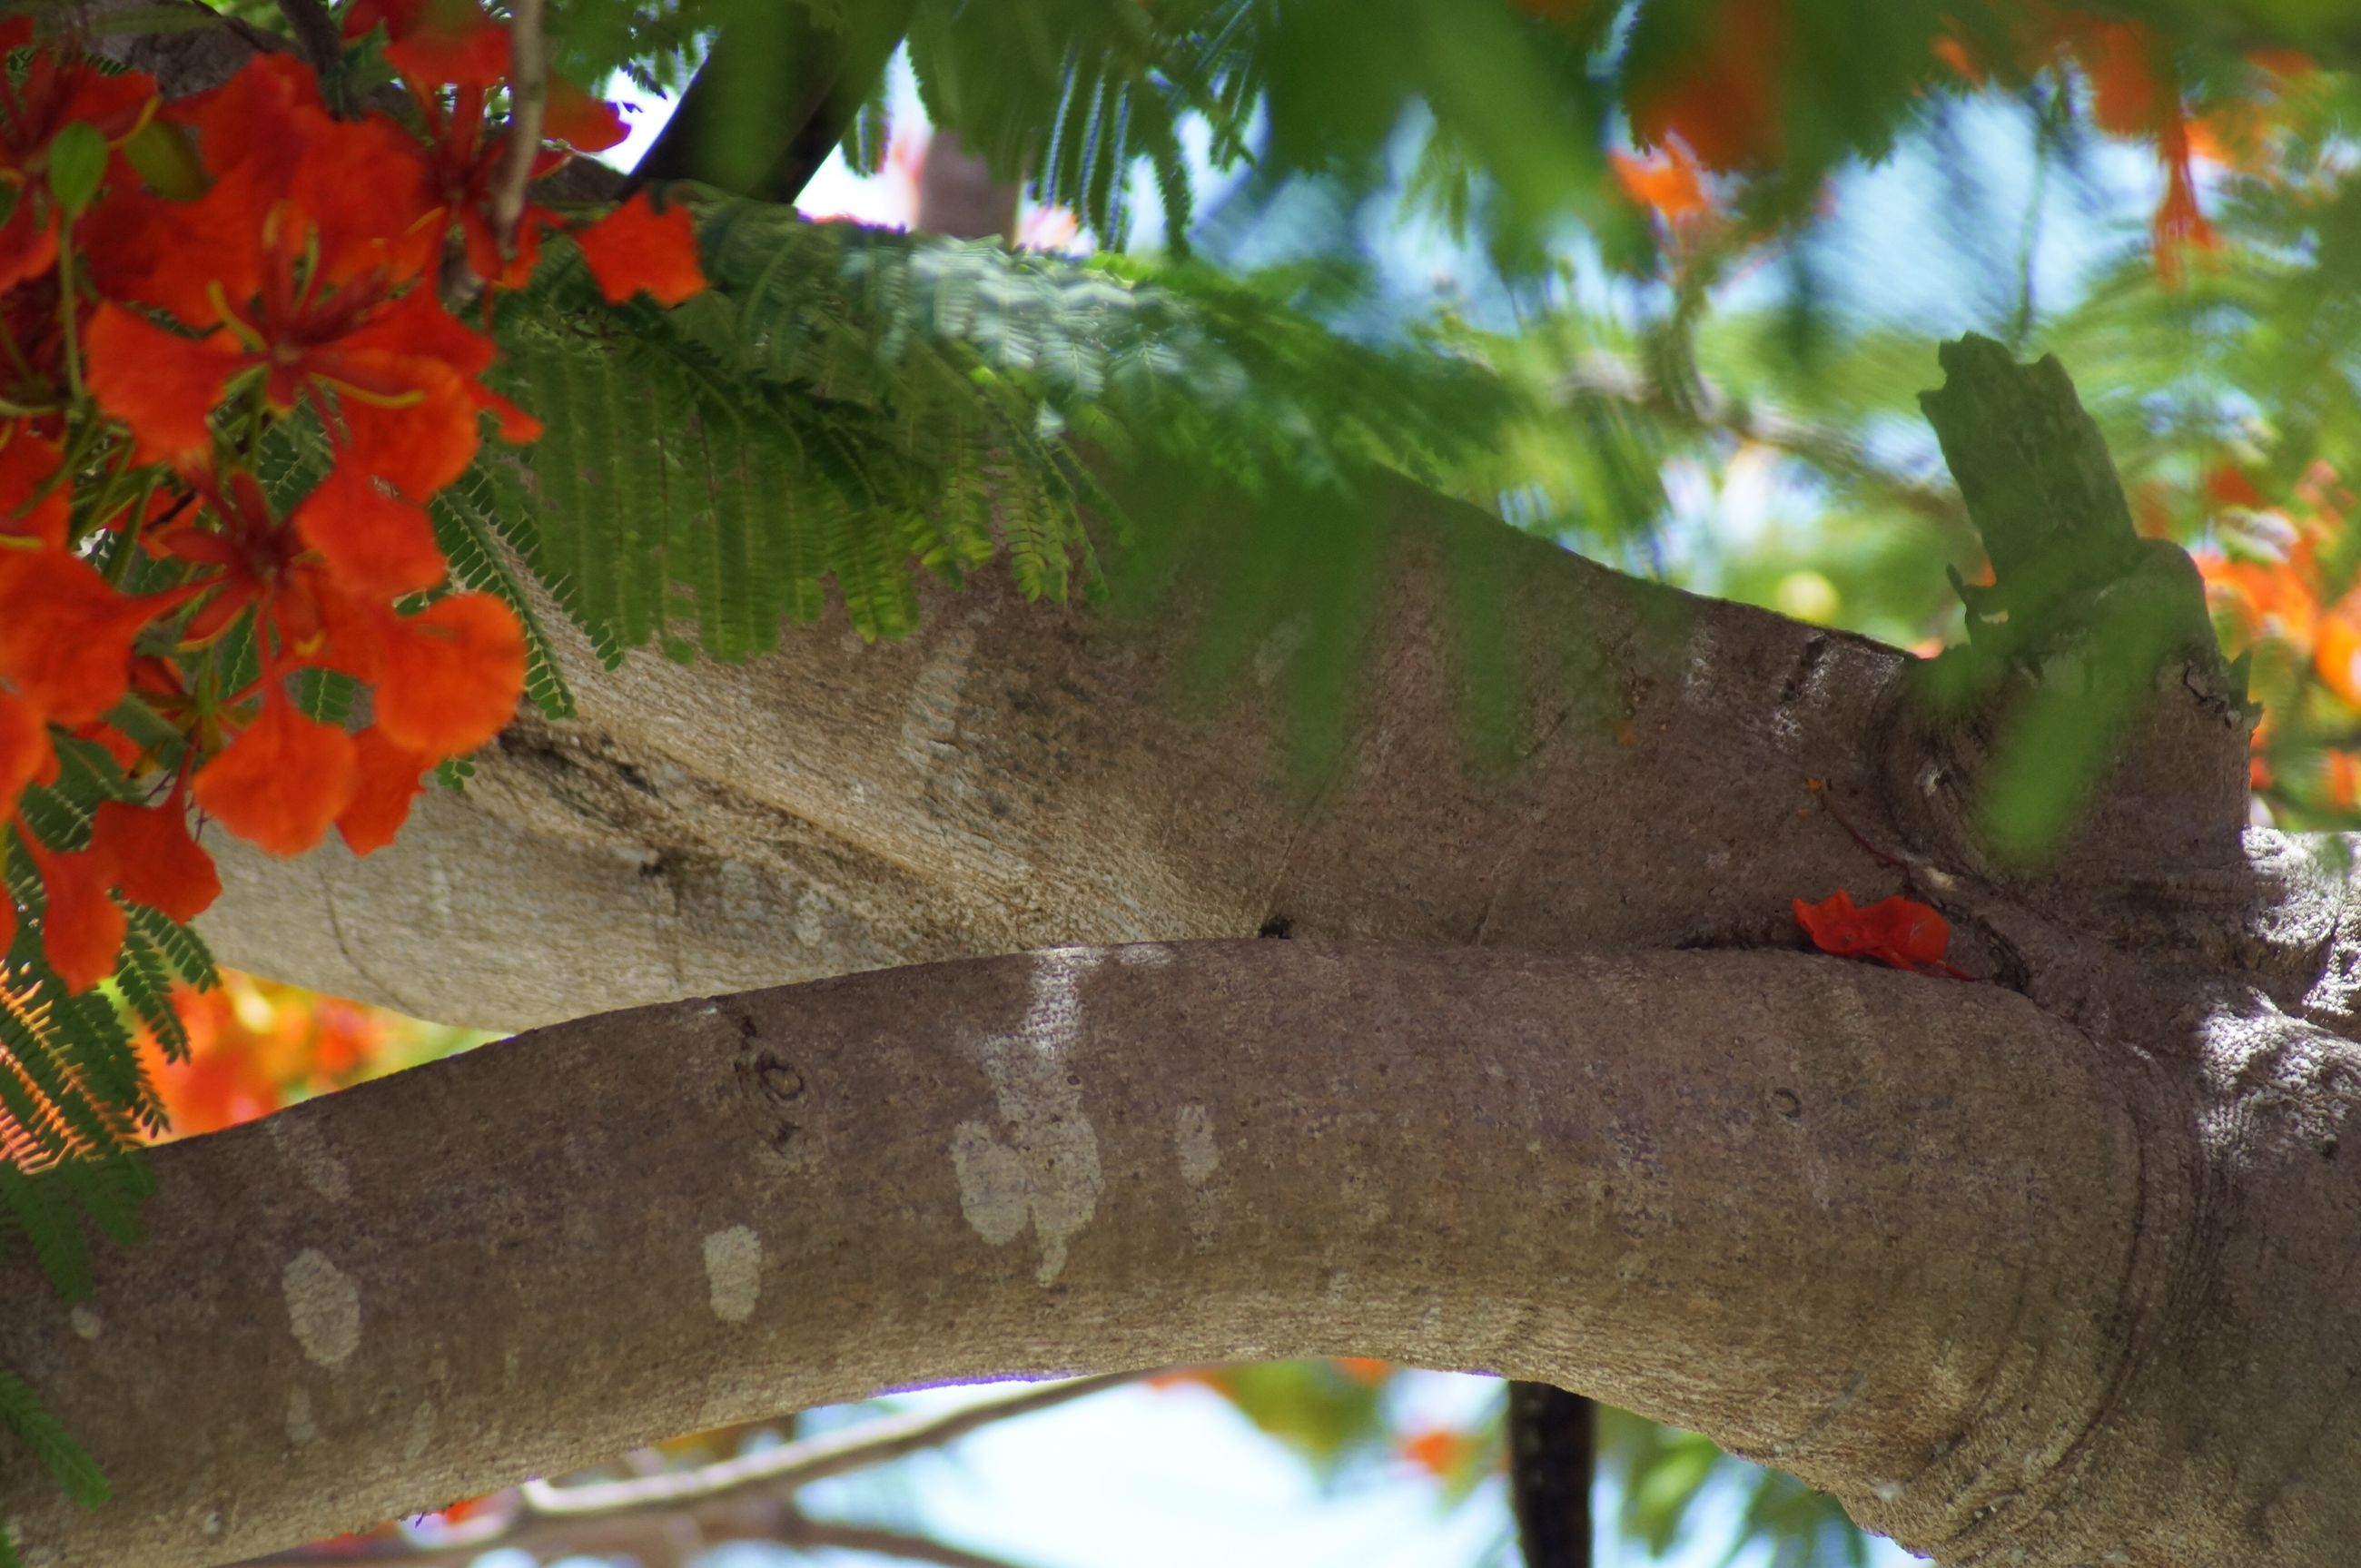 leaf, tree trunk, close-up, growth, nature, outdoors, red, green, tranquility, flower, fragility, beauty in nature, day, green color, vibrant color, growing, no people, freshness, weathered